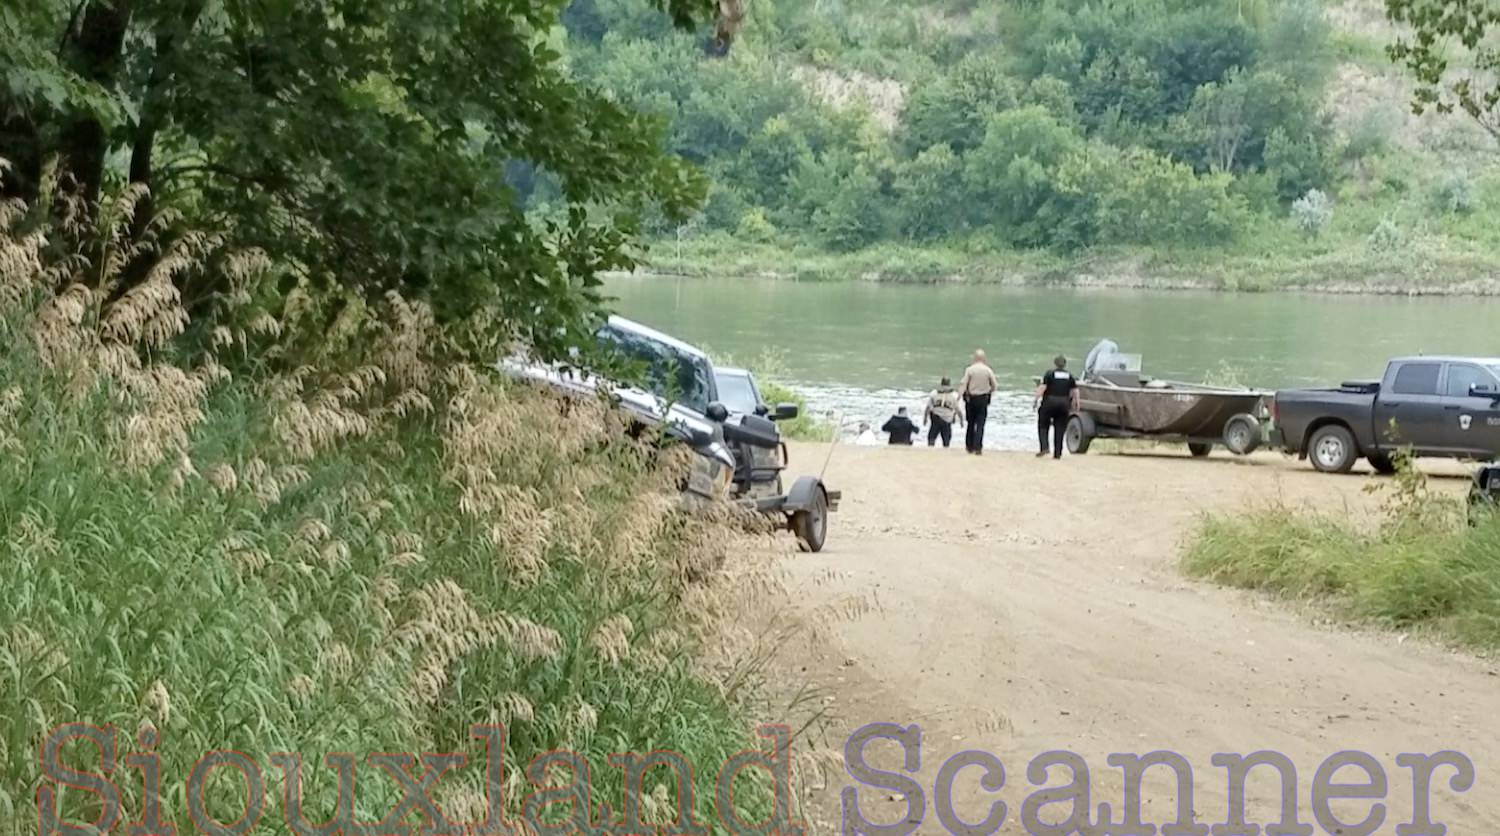 Search underway at Burbank Beach on Missouri River near Elk Point for missing swimmer